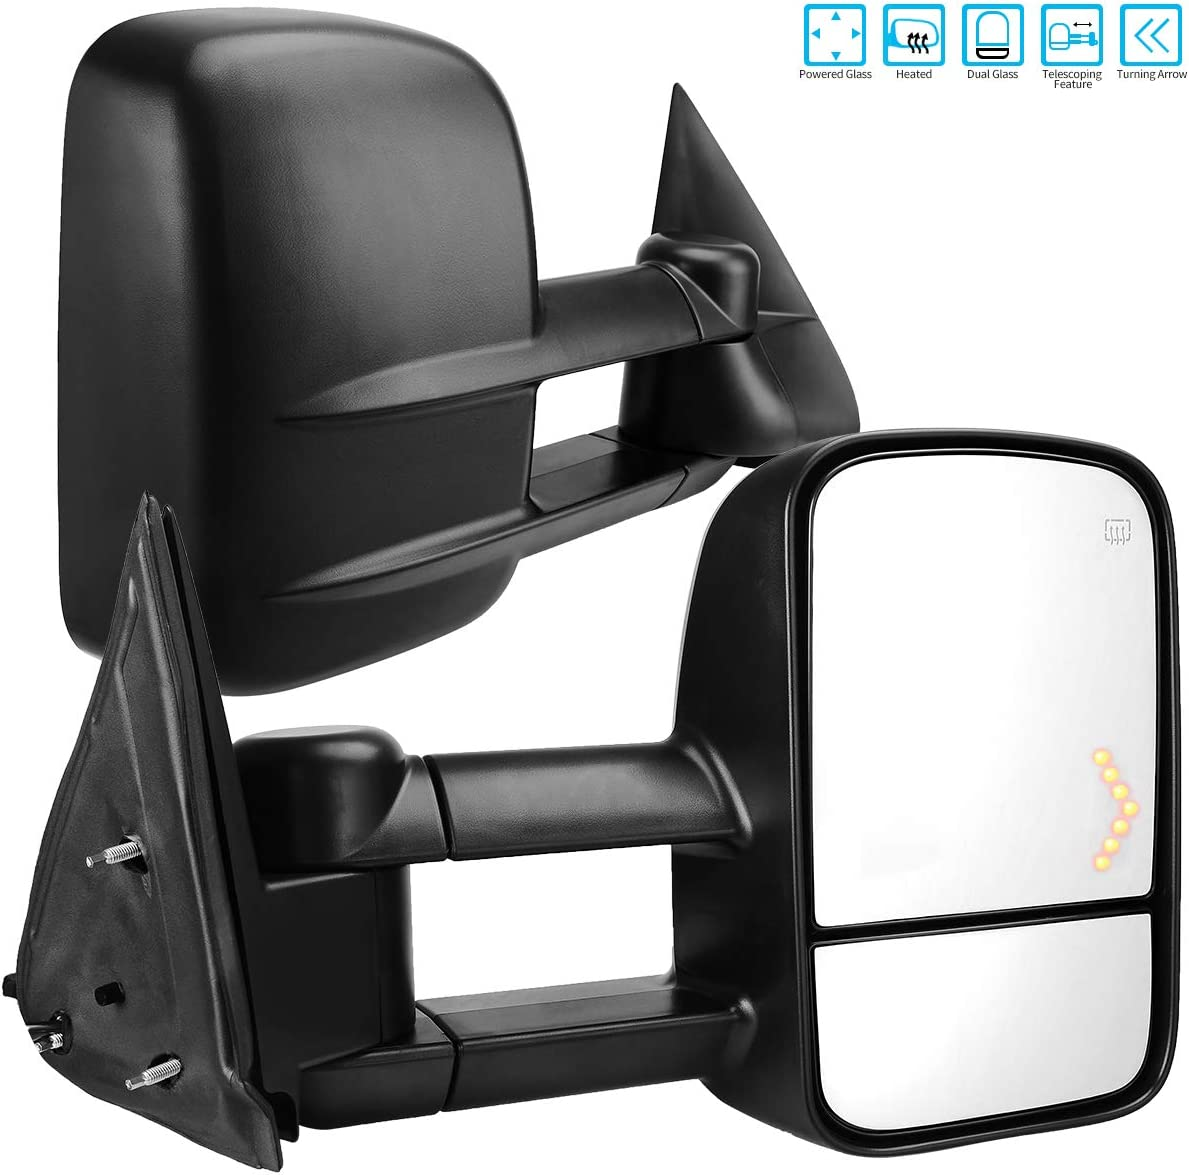 Power Adjusted Heated Manual Folding Side Mirror SCITOO Tow Mirrors Compatible fit for 2003-2006 GMC Sierra Yukon Chevrolet Silverado Suburban Tahoe 2007 Classic